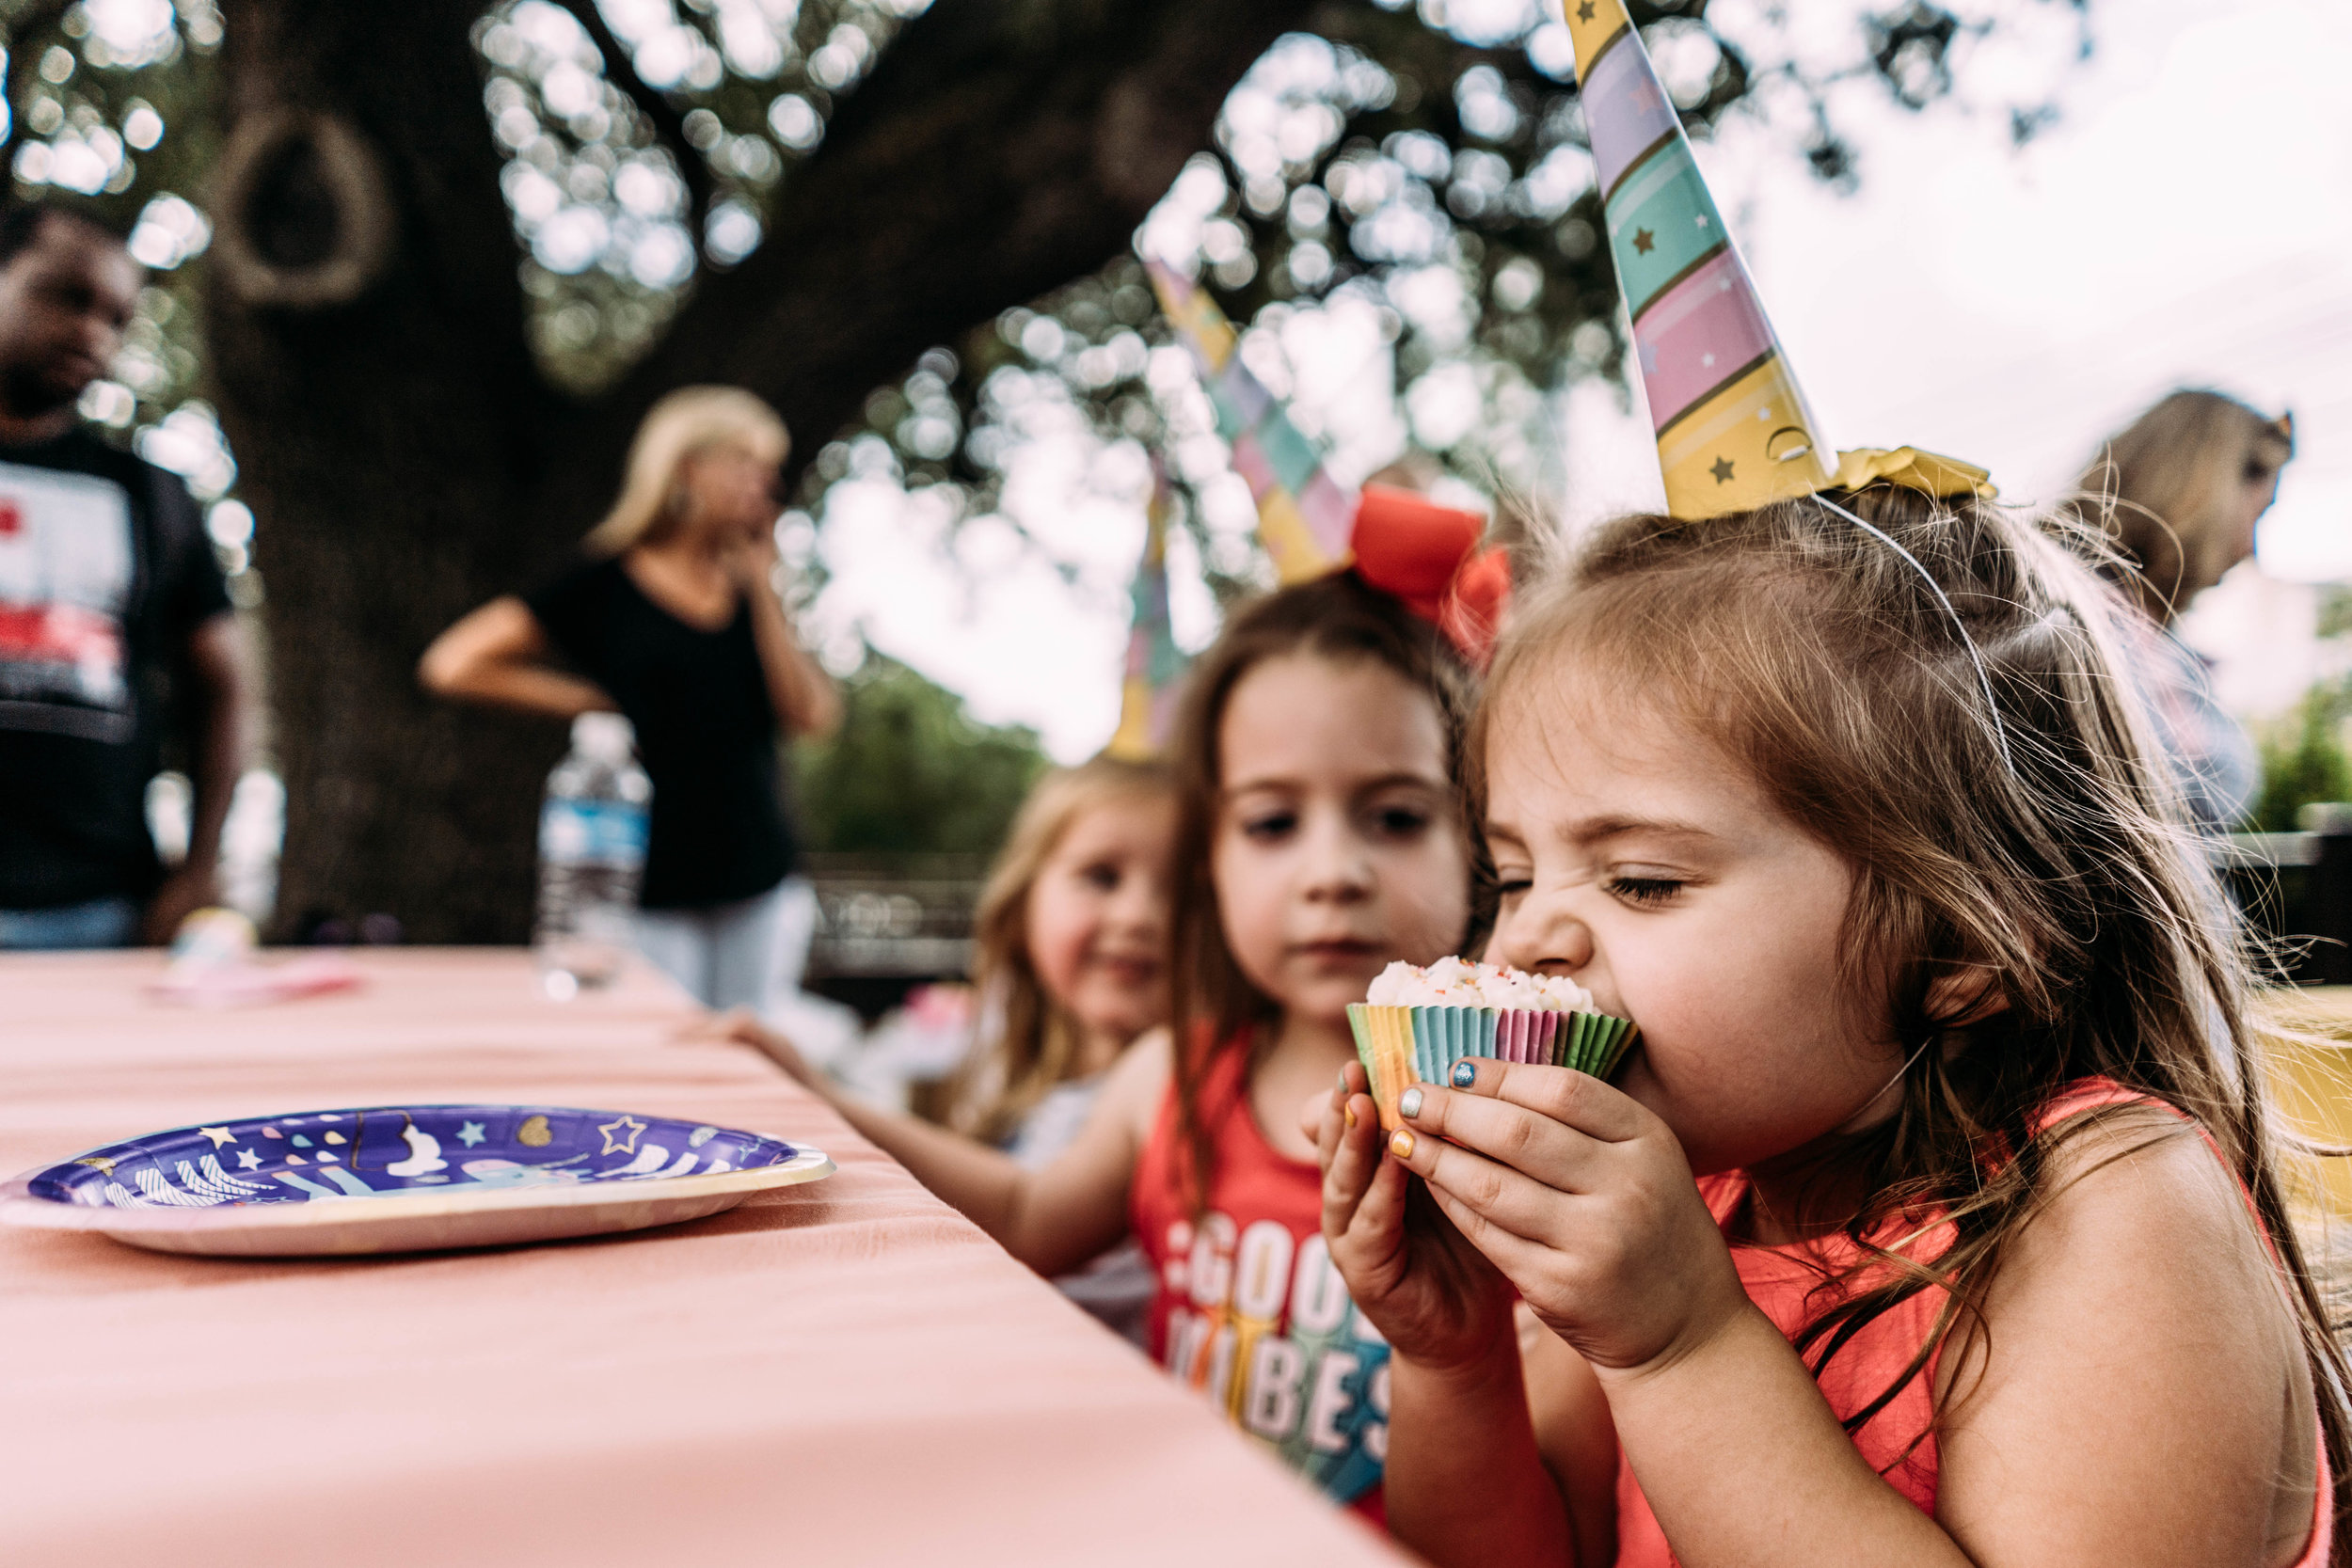 birthday party at the park-22.jpg